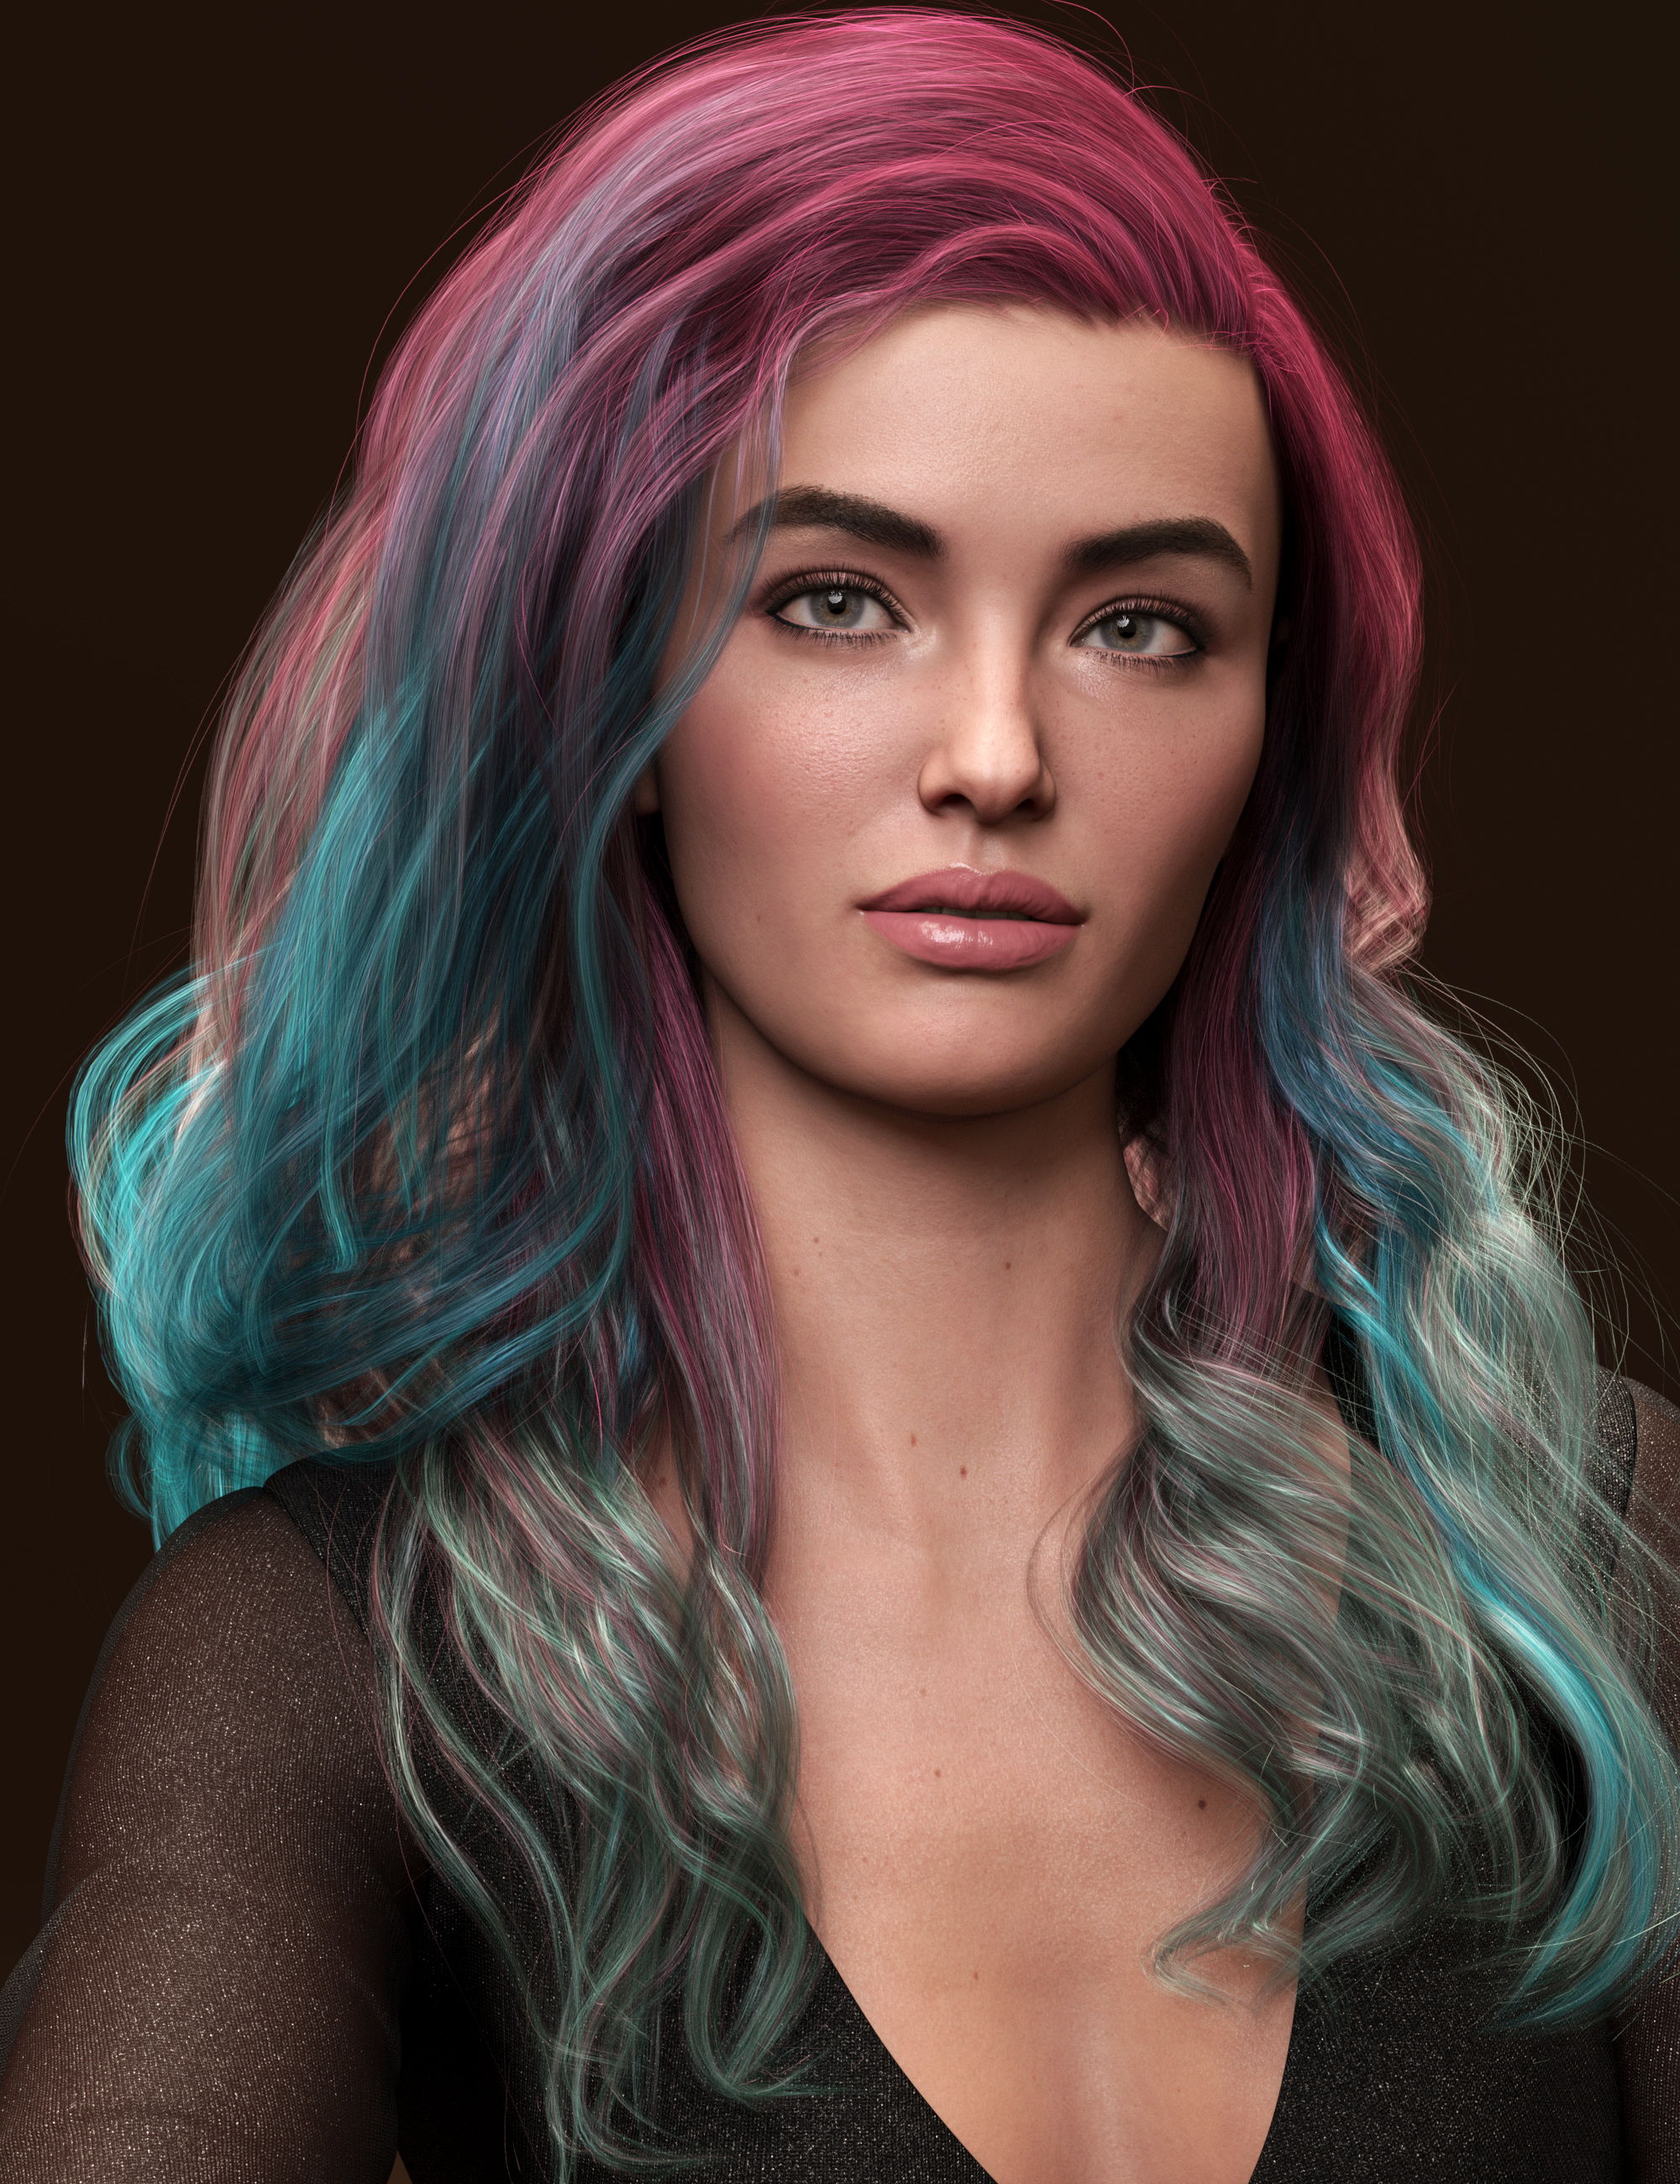 2021-09 Hair Texture Expansion by: outoftouch, 3D Models by Daz 3D